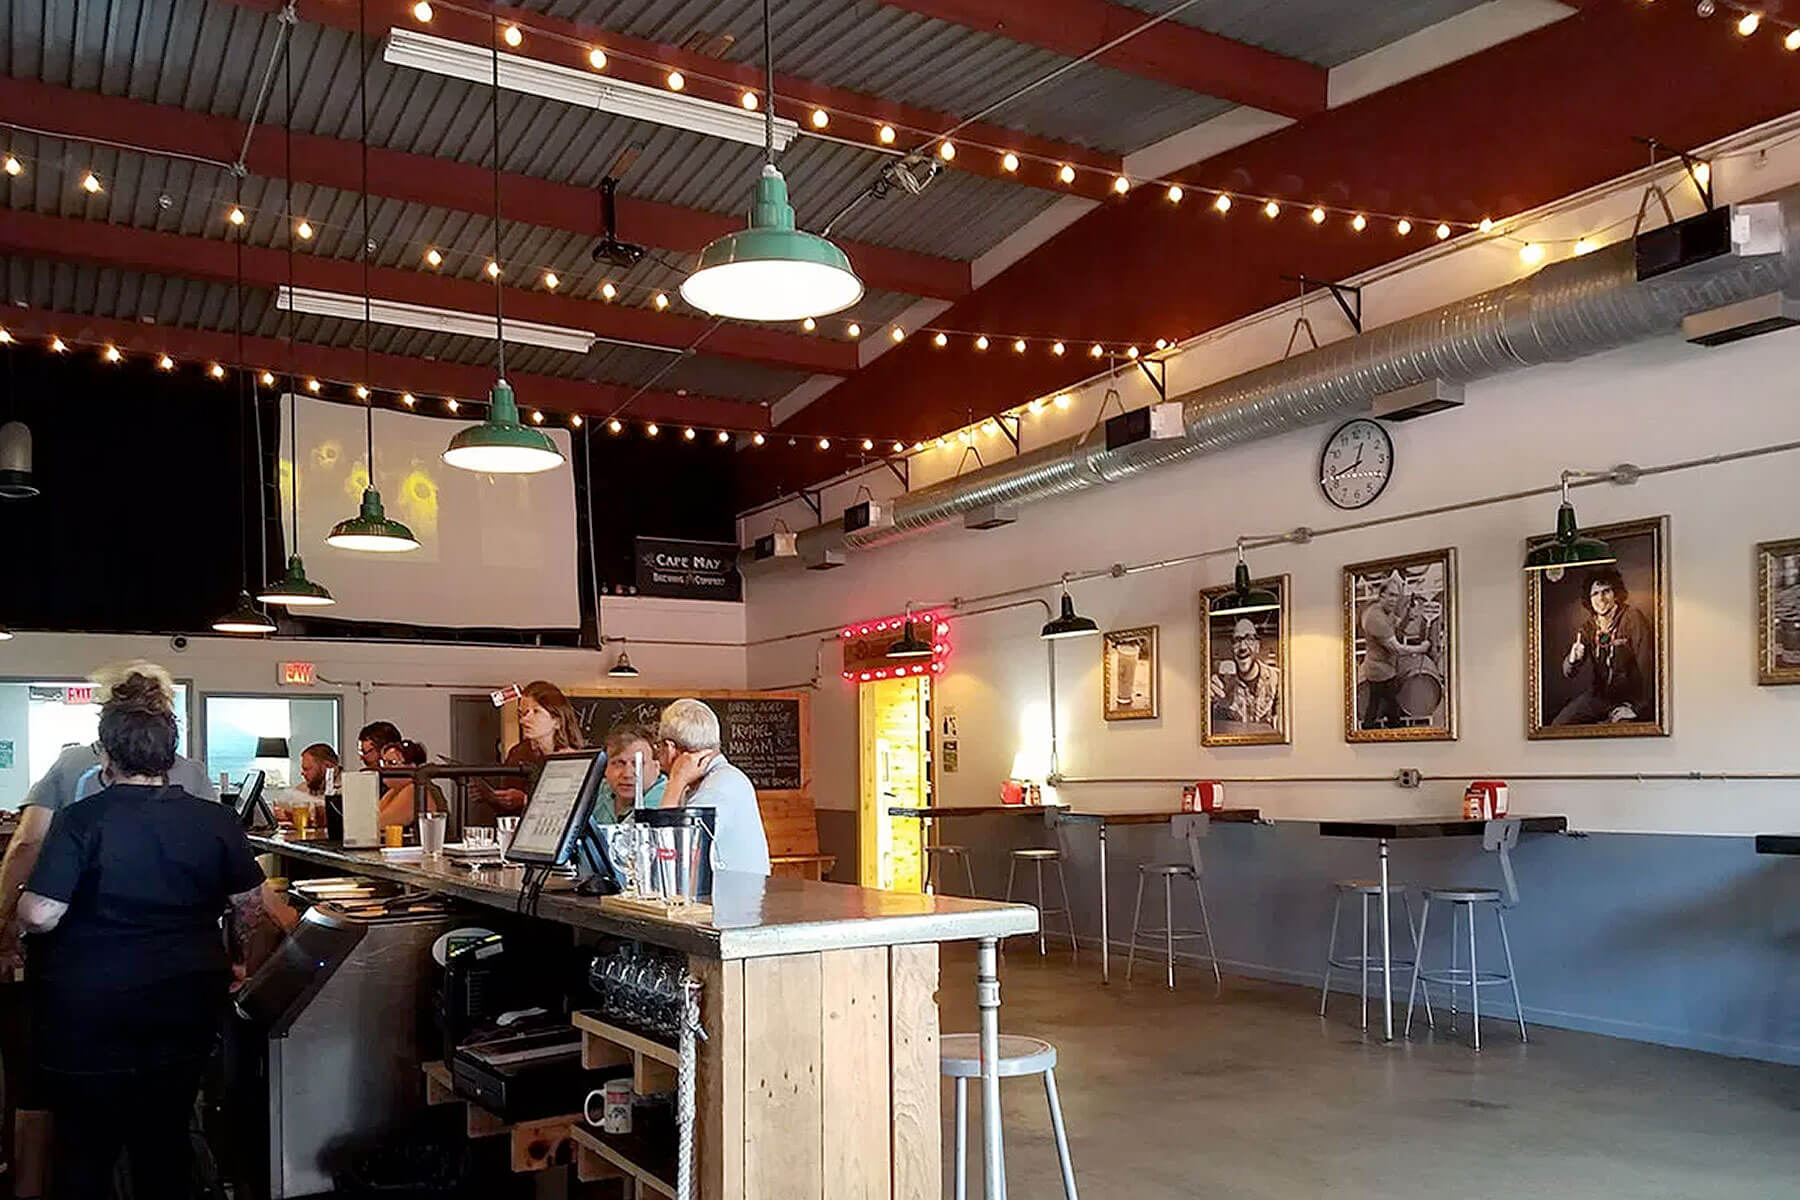 Inside the tasting room at Cape May Brewing Company in Cape May, New Jersey